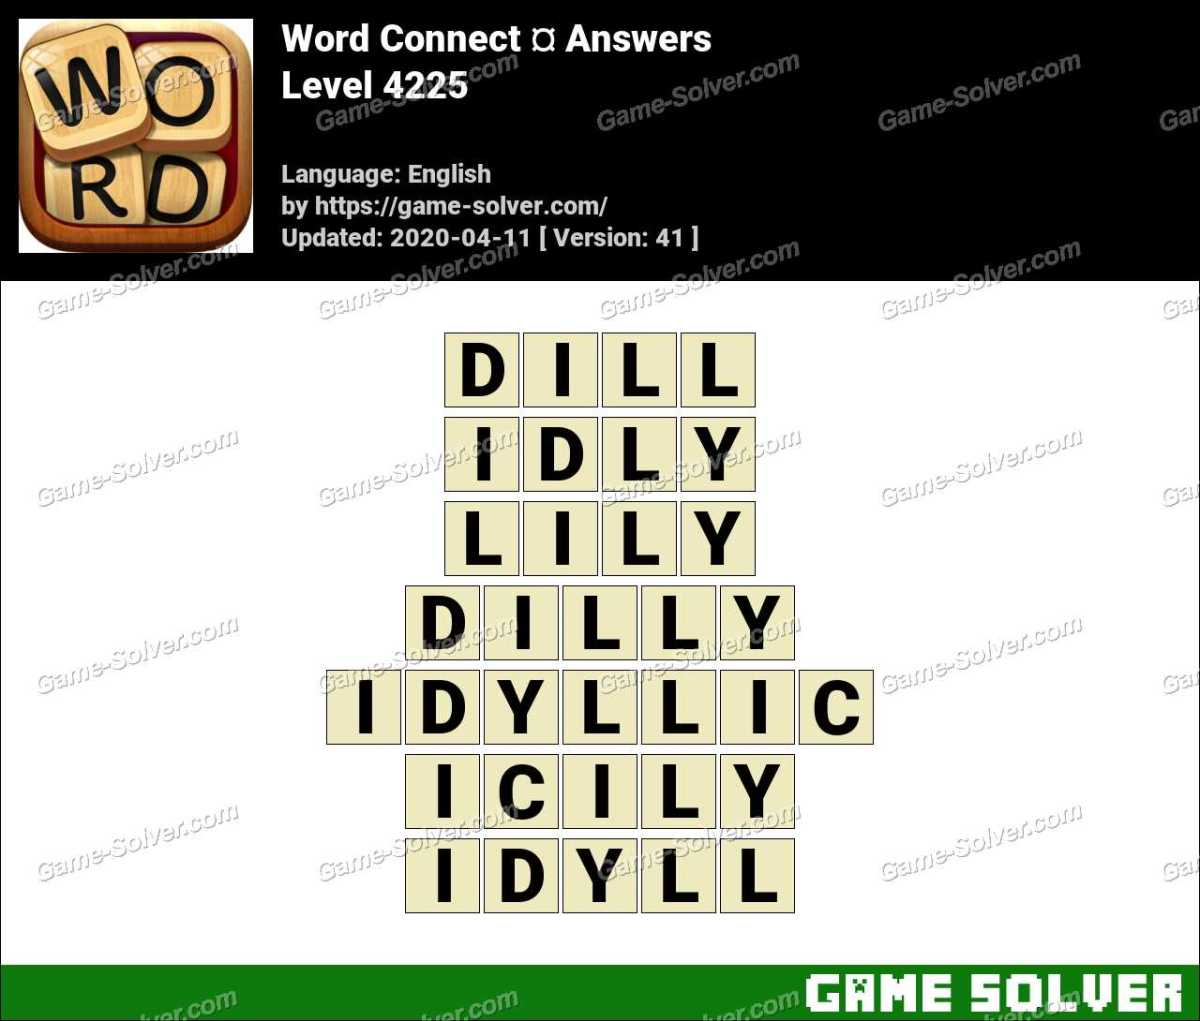 Word Connect Level 4225 Answers